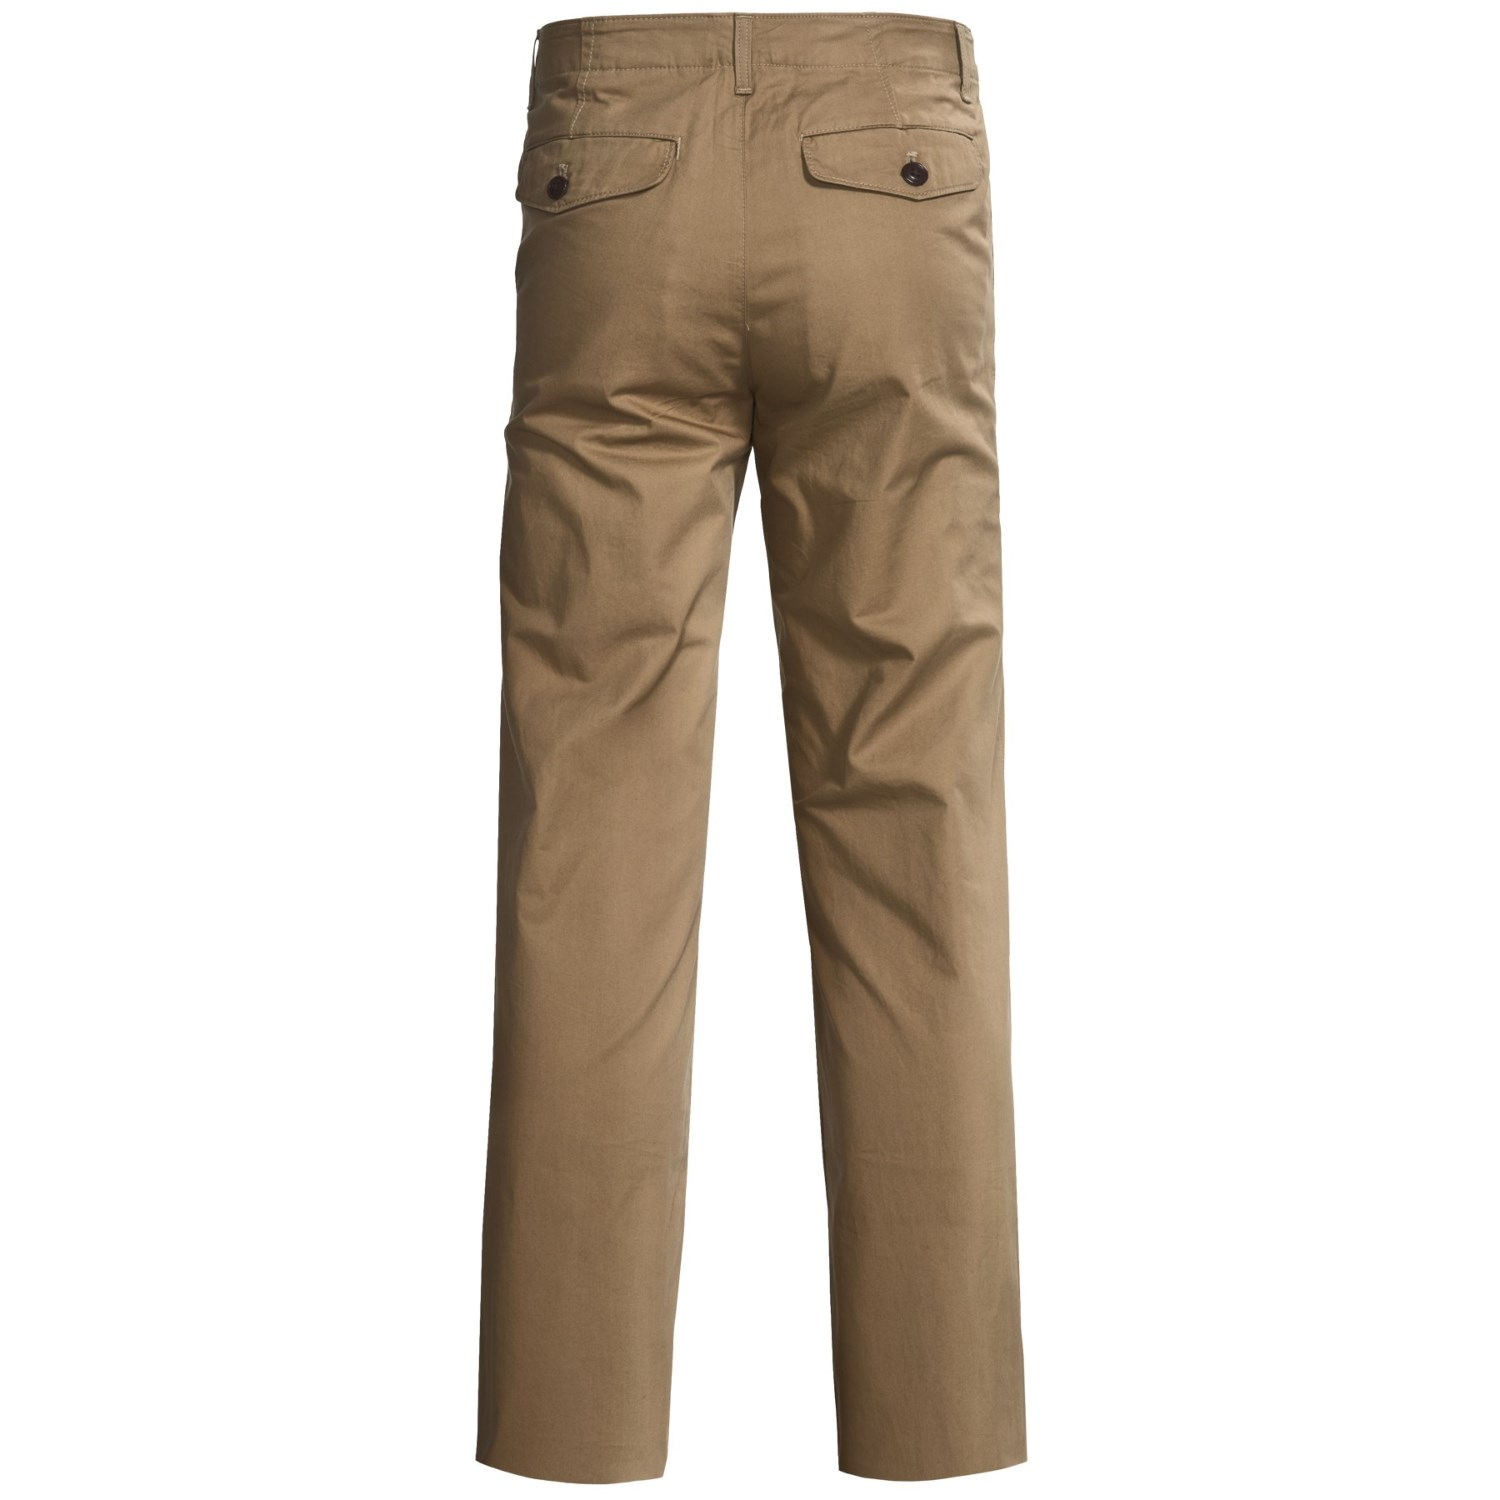 Free Shipping on orders of $75 or more! Jeans & Pants for Men featuring Jeans, Slacks, Pants, & Shorts from Wrangler, Levi's & more from Sheplers.